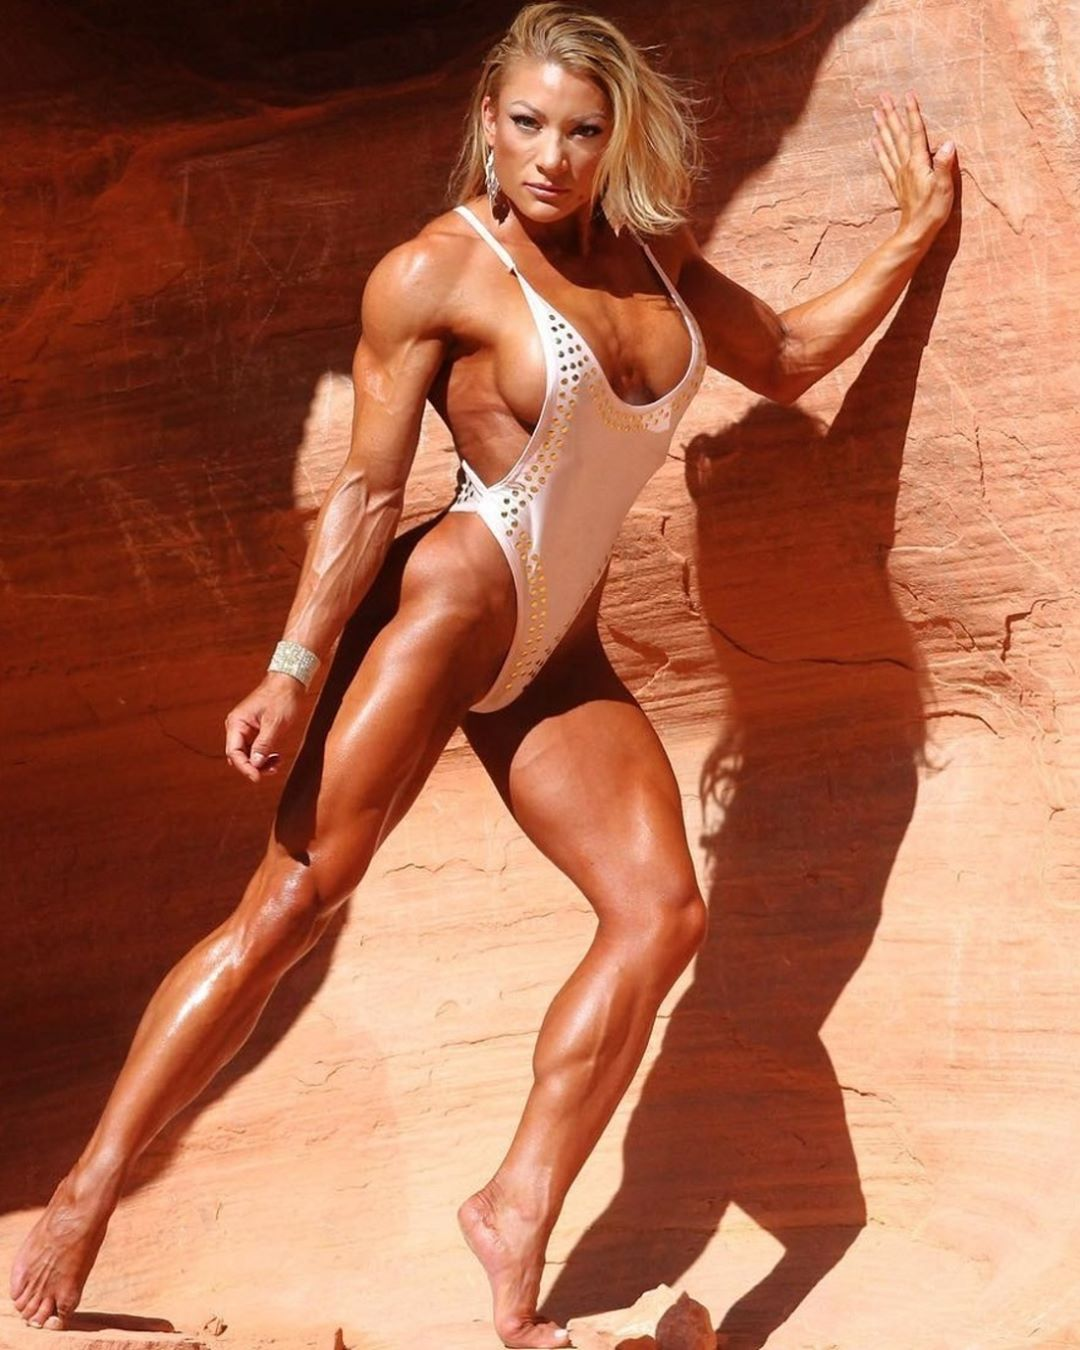 sexy female bodybuilder with muscular body and muscle booty pic from facebook